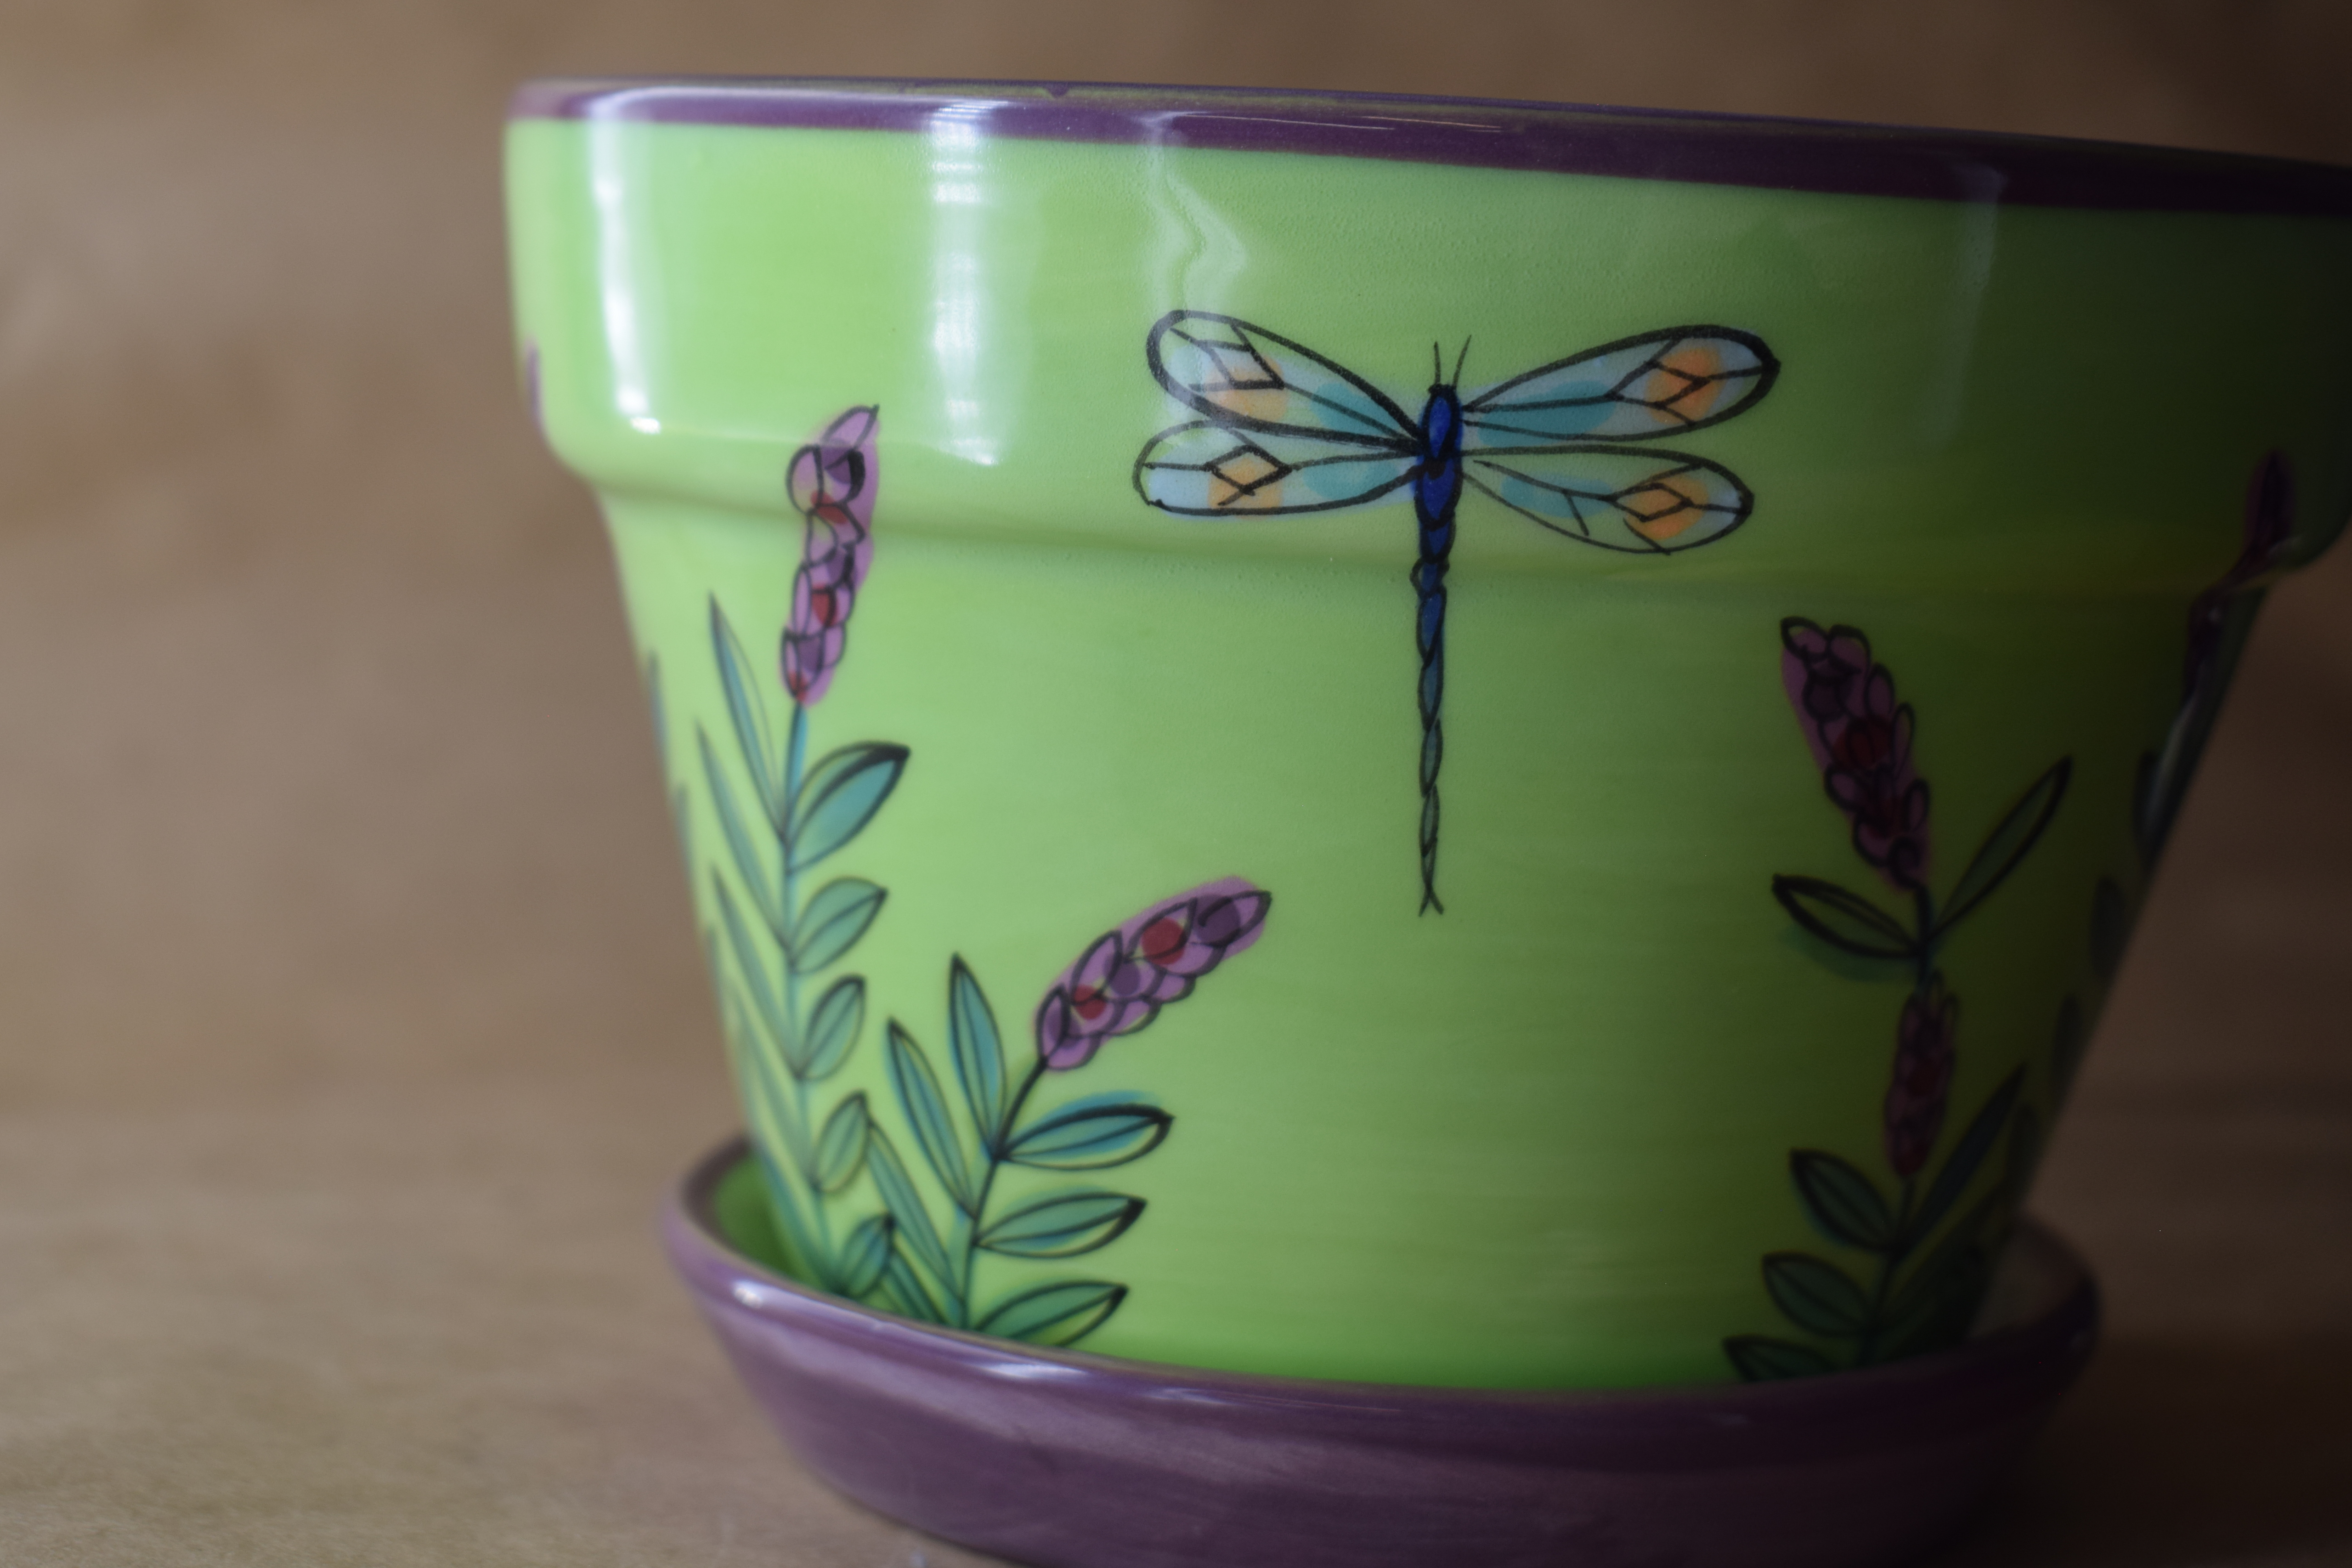 (MP06-GLD) Medium Planter- Green Lavender with Dragonfly